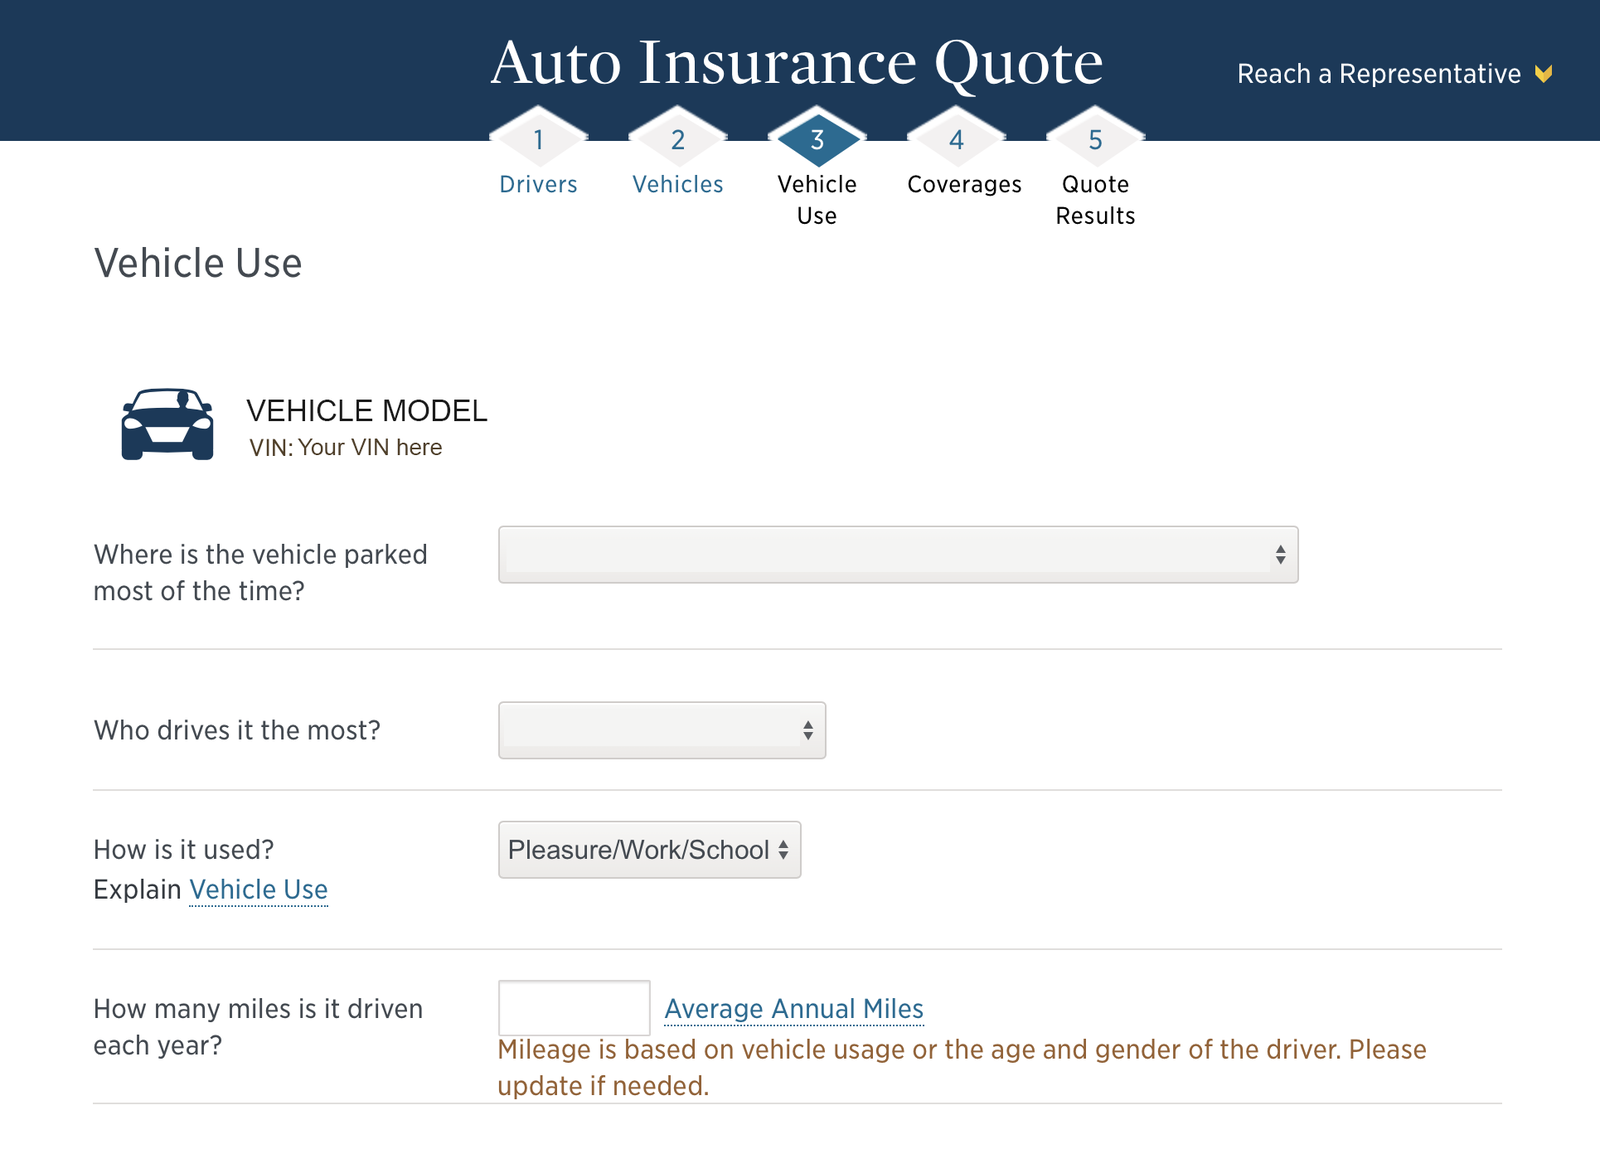 Call Usaa Car Insurance | Life Insurance Blog